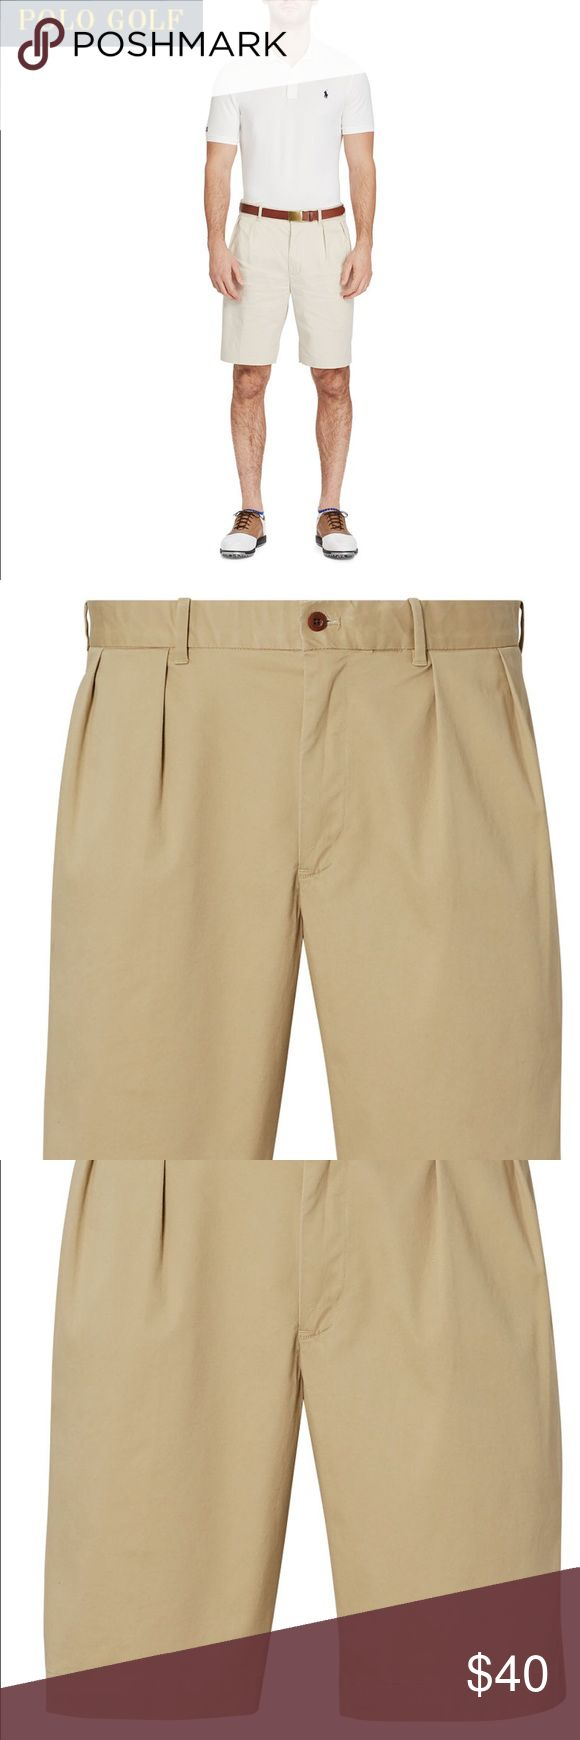 Polo Golf Ralph Lauren Shorts Size 30 *** NEW *** Brand New w/Tags Polo Ralph Lauren Golf Shorts              Color - Kaki - Brown - Tan Polo by Ralph Lauren Shorts Athletic